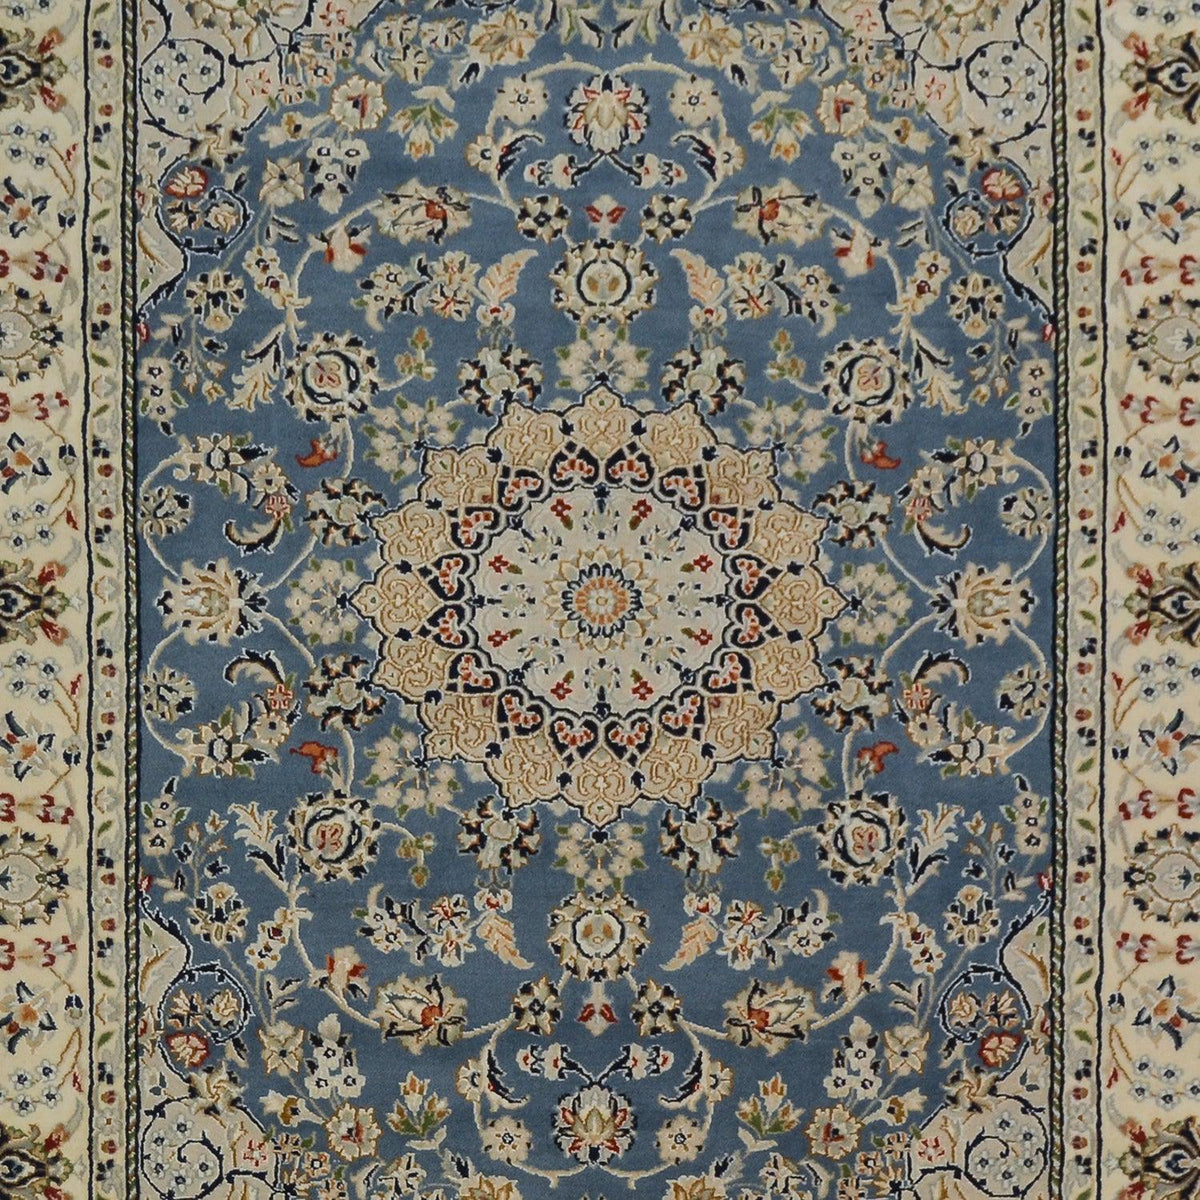 Fine Hand-knotted Wool Nain Rug 195cm 301cm